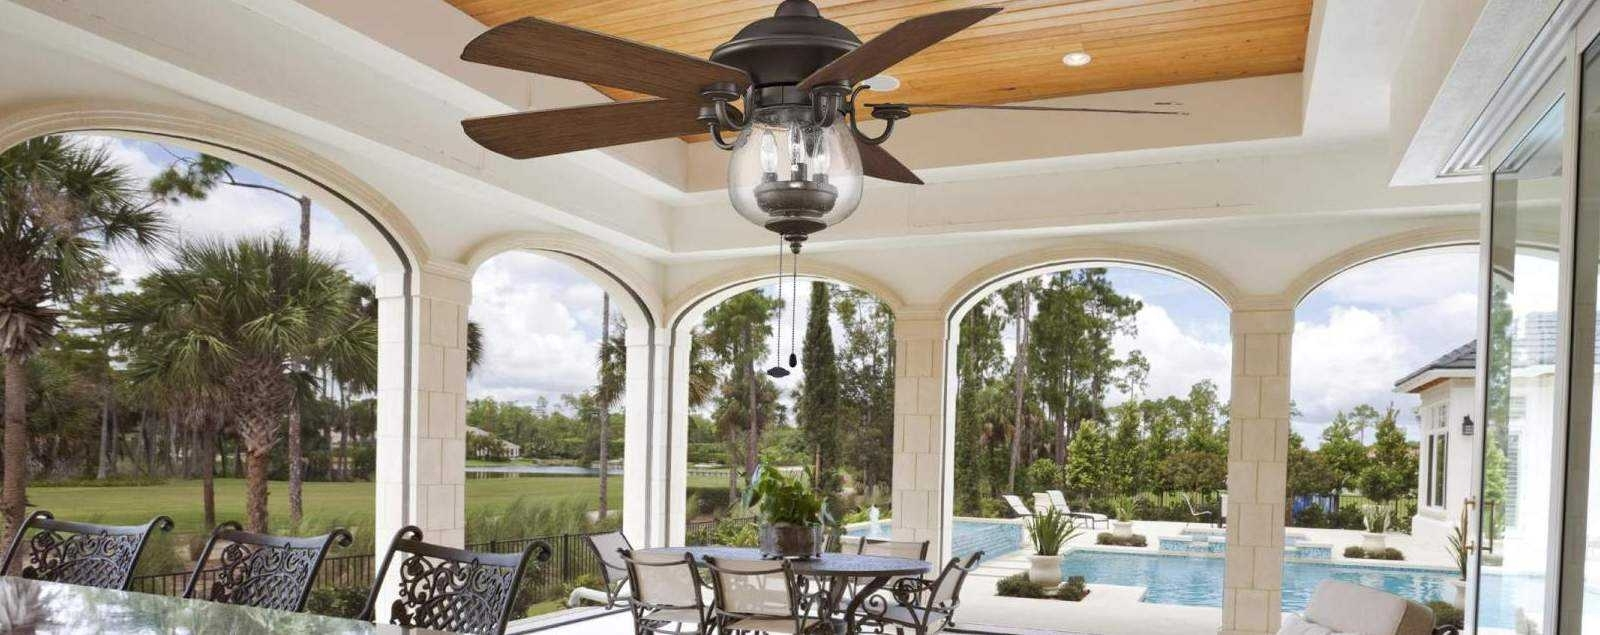 Outdoor Ceiling Fans For Porches For Latest Outdoor Ceiling Fans Hansen Ideas With Incredible Exterior For (View 11 of 20)